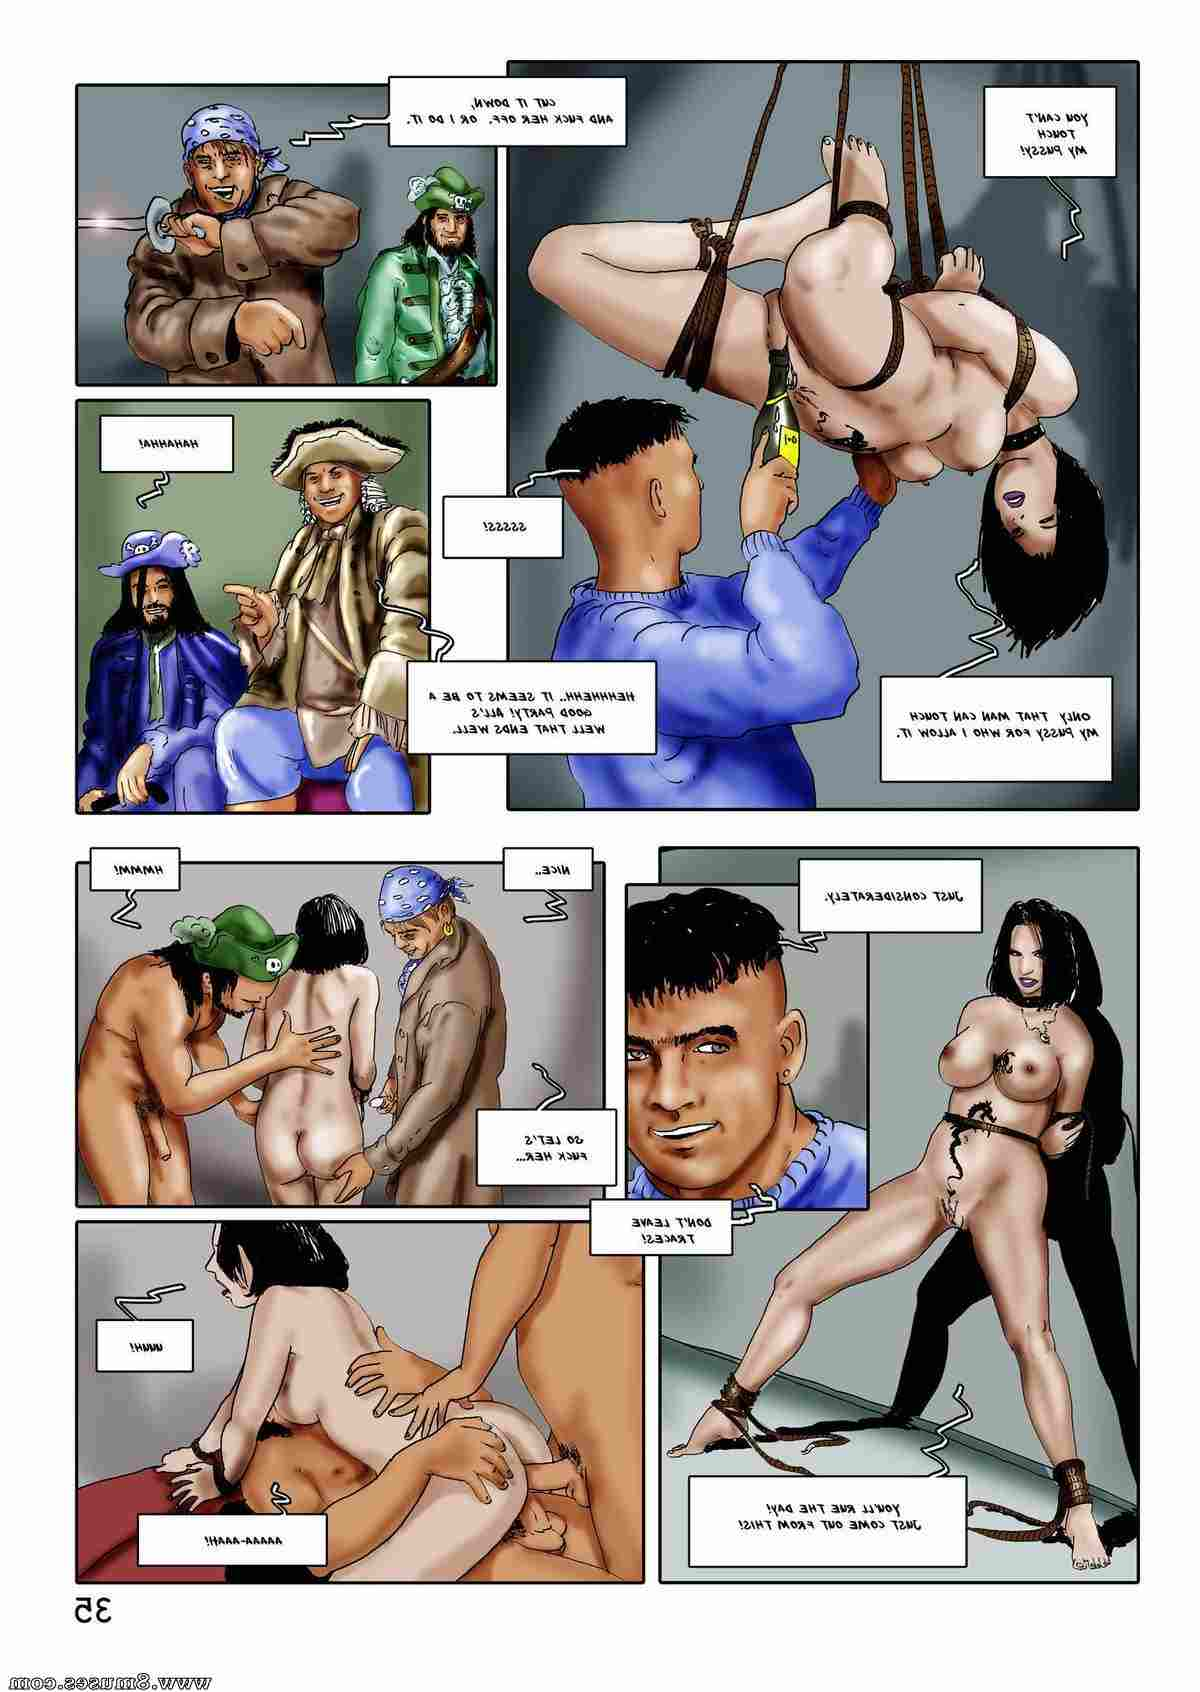 AllPornComics_com-Comics/Danube-Girls Danube_Girls__8muses_-_Sex_and_Porn_Comics_35.jpg